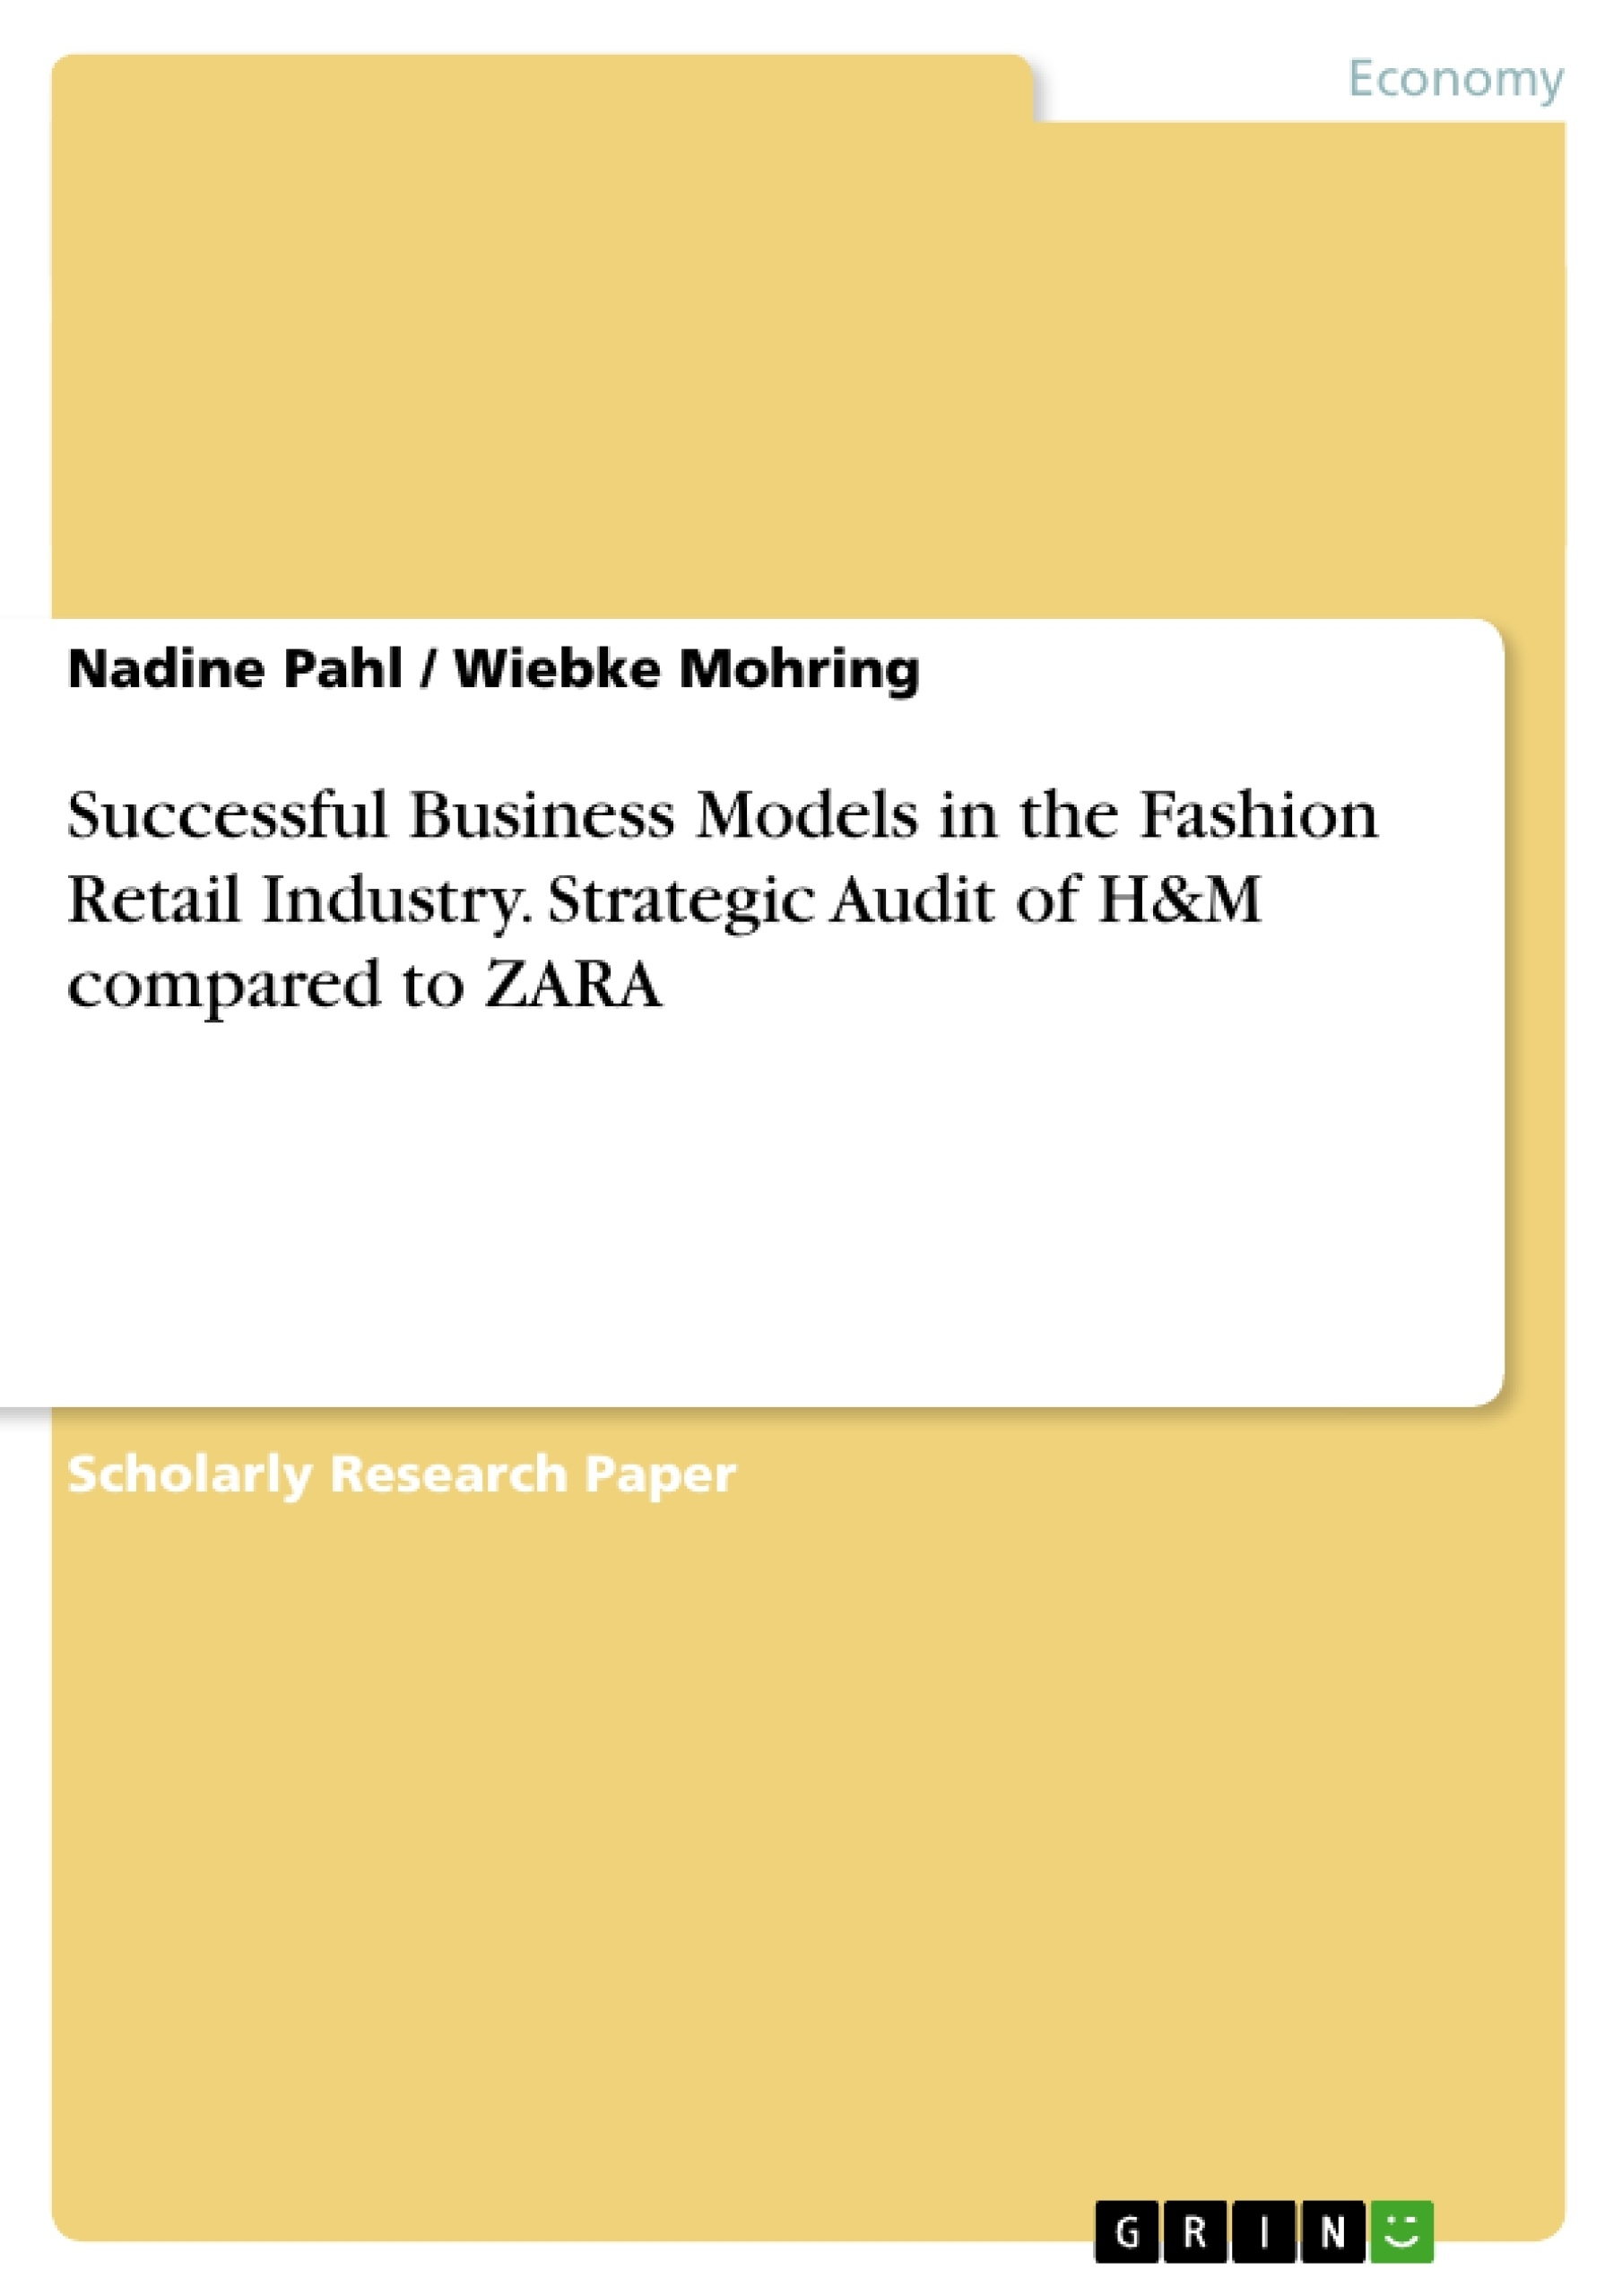 Thesis on retailing industry